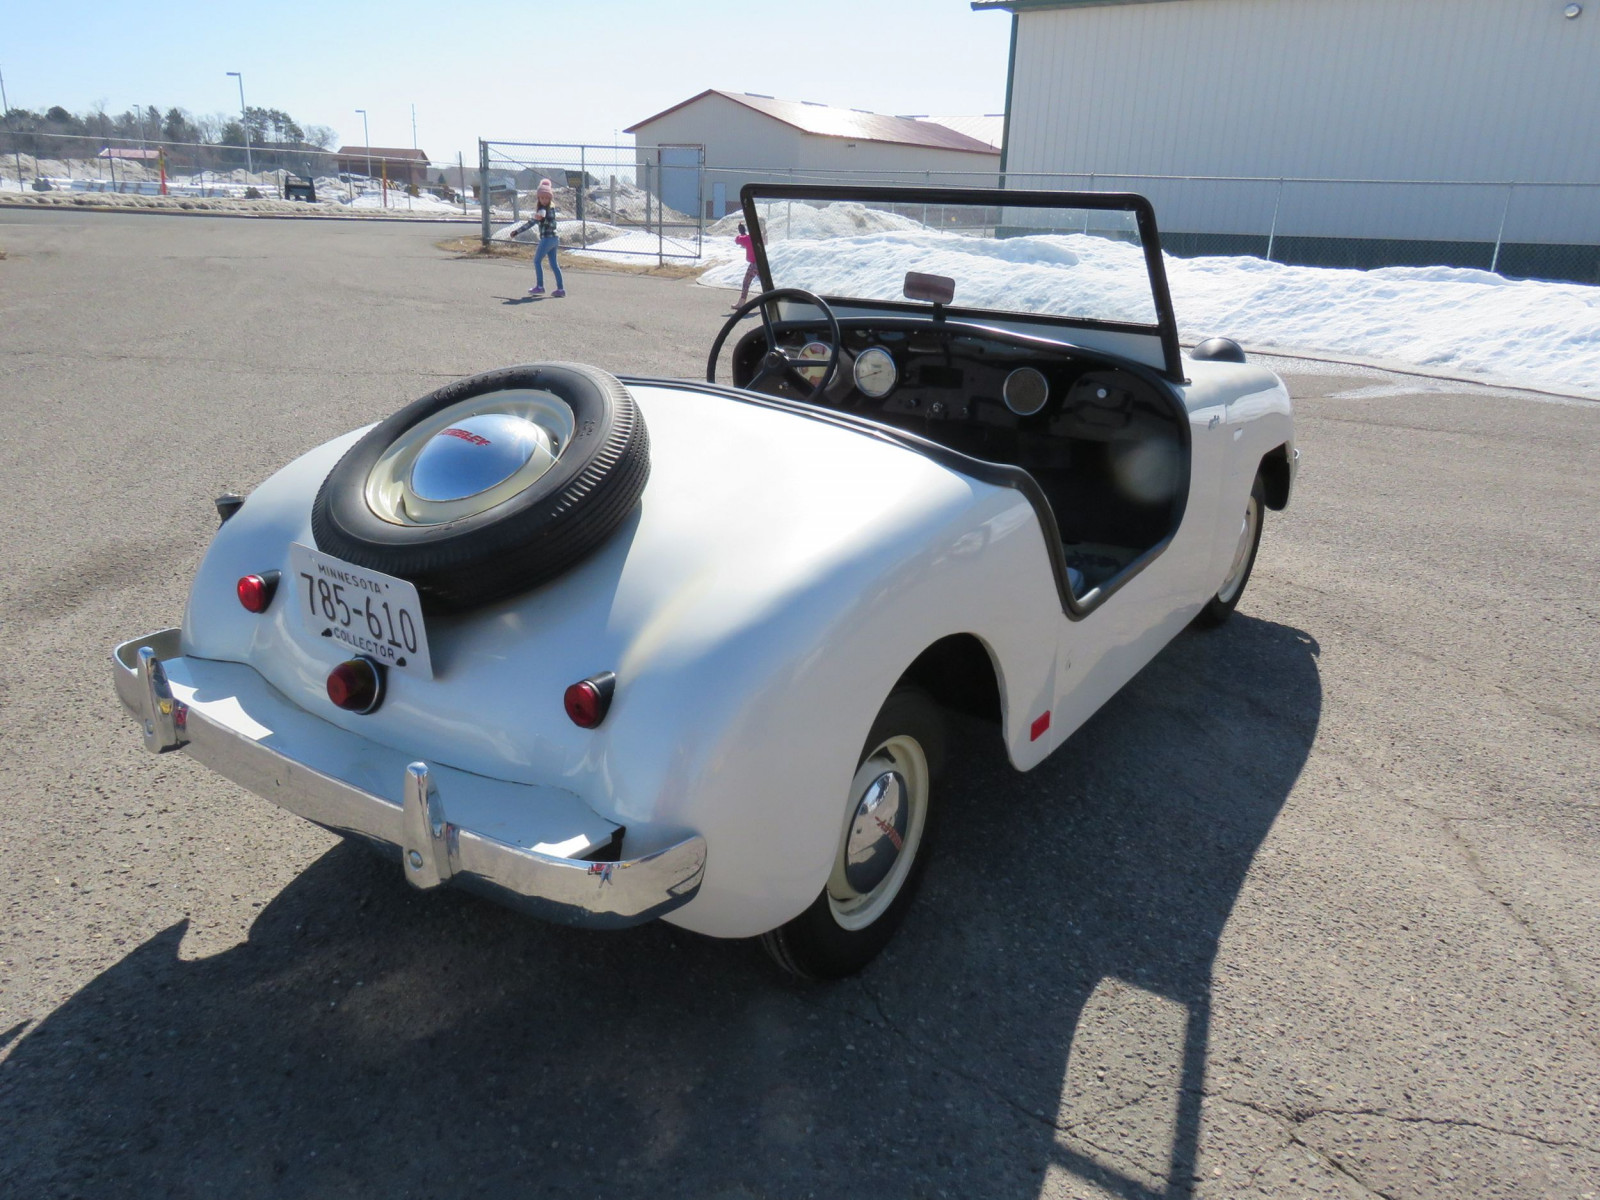 1950 Crosley Hot Shot Roadster - Image 7